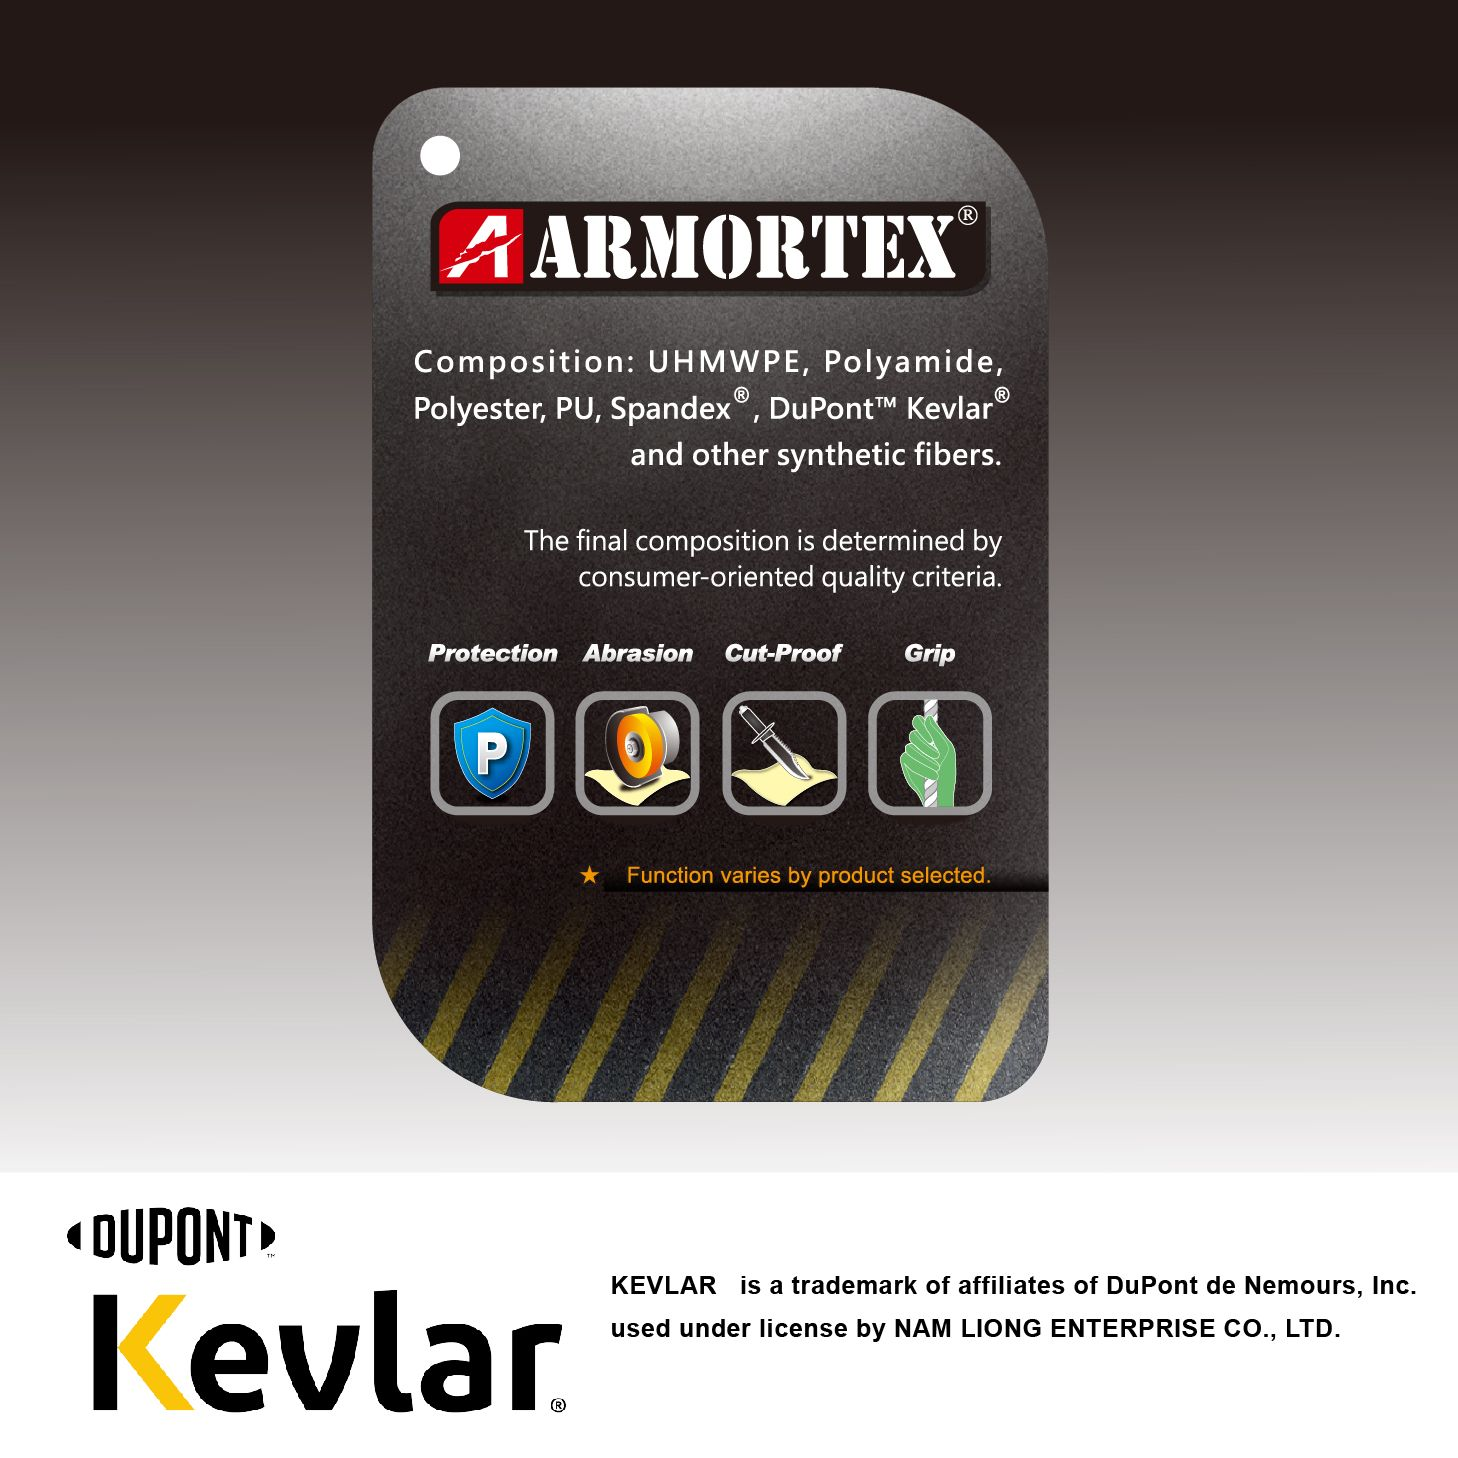 Kevlar®は、EI du Pont de Nemours&Company(DuPont™)の登録商標です。ARMORTEX®はの登録商標です Nam Liong Global Corporation,Tainan Branch。